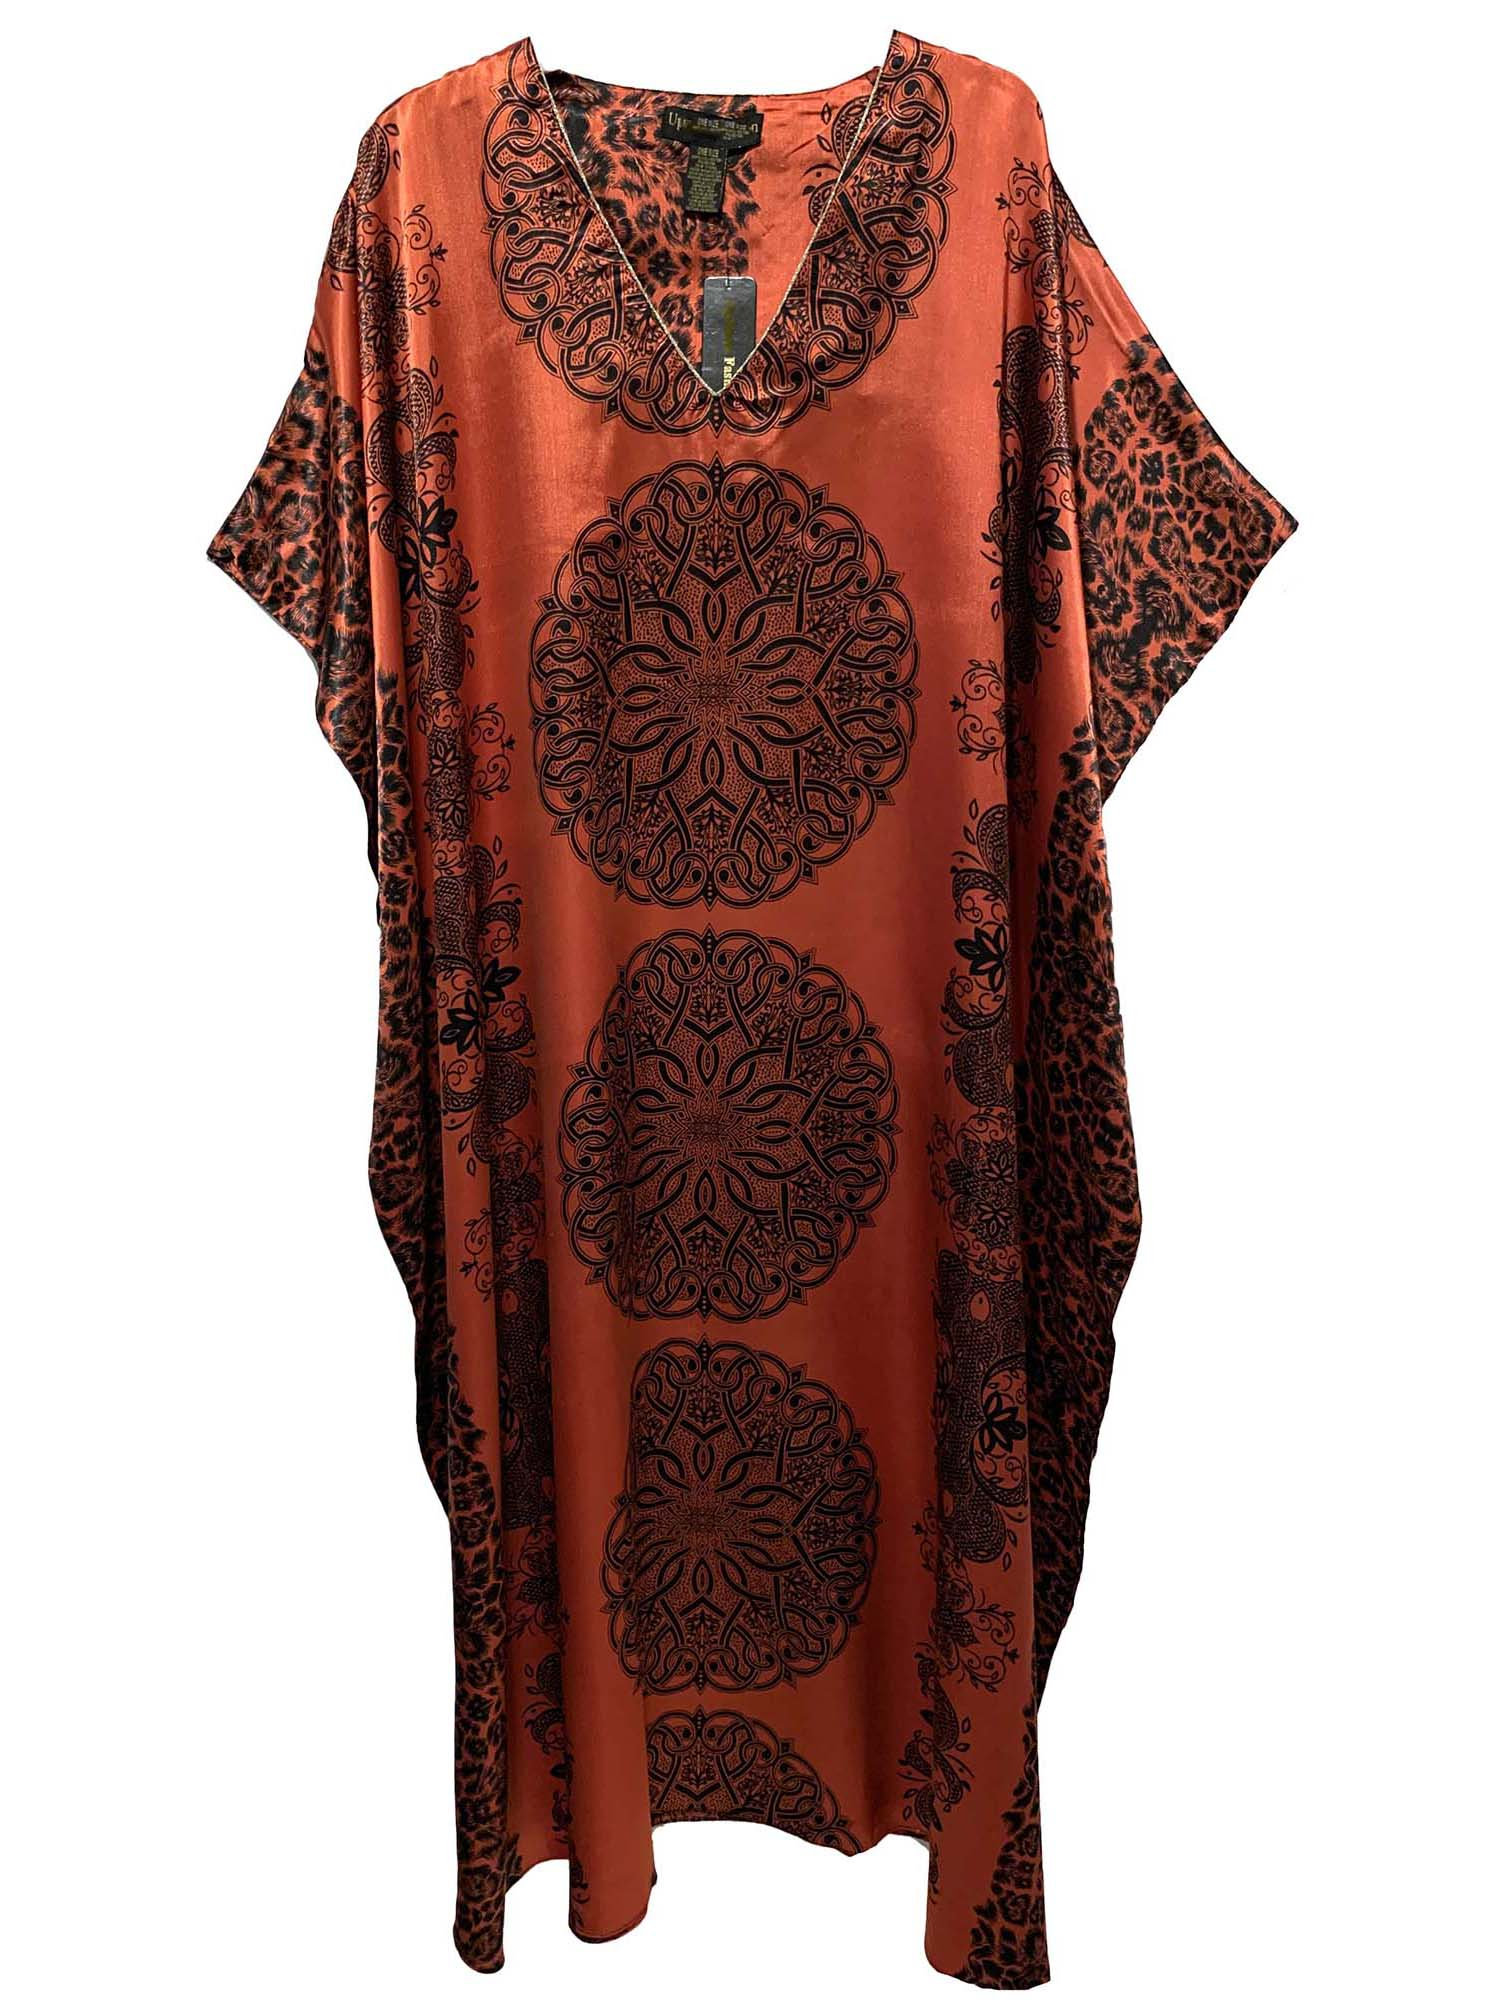 Women's Long Satin Caftan / Kaftan / Muumuu, Red Mandala Print